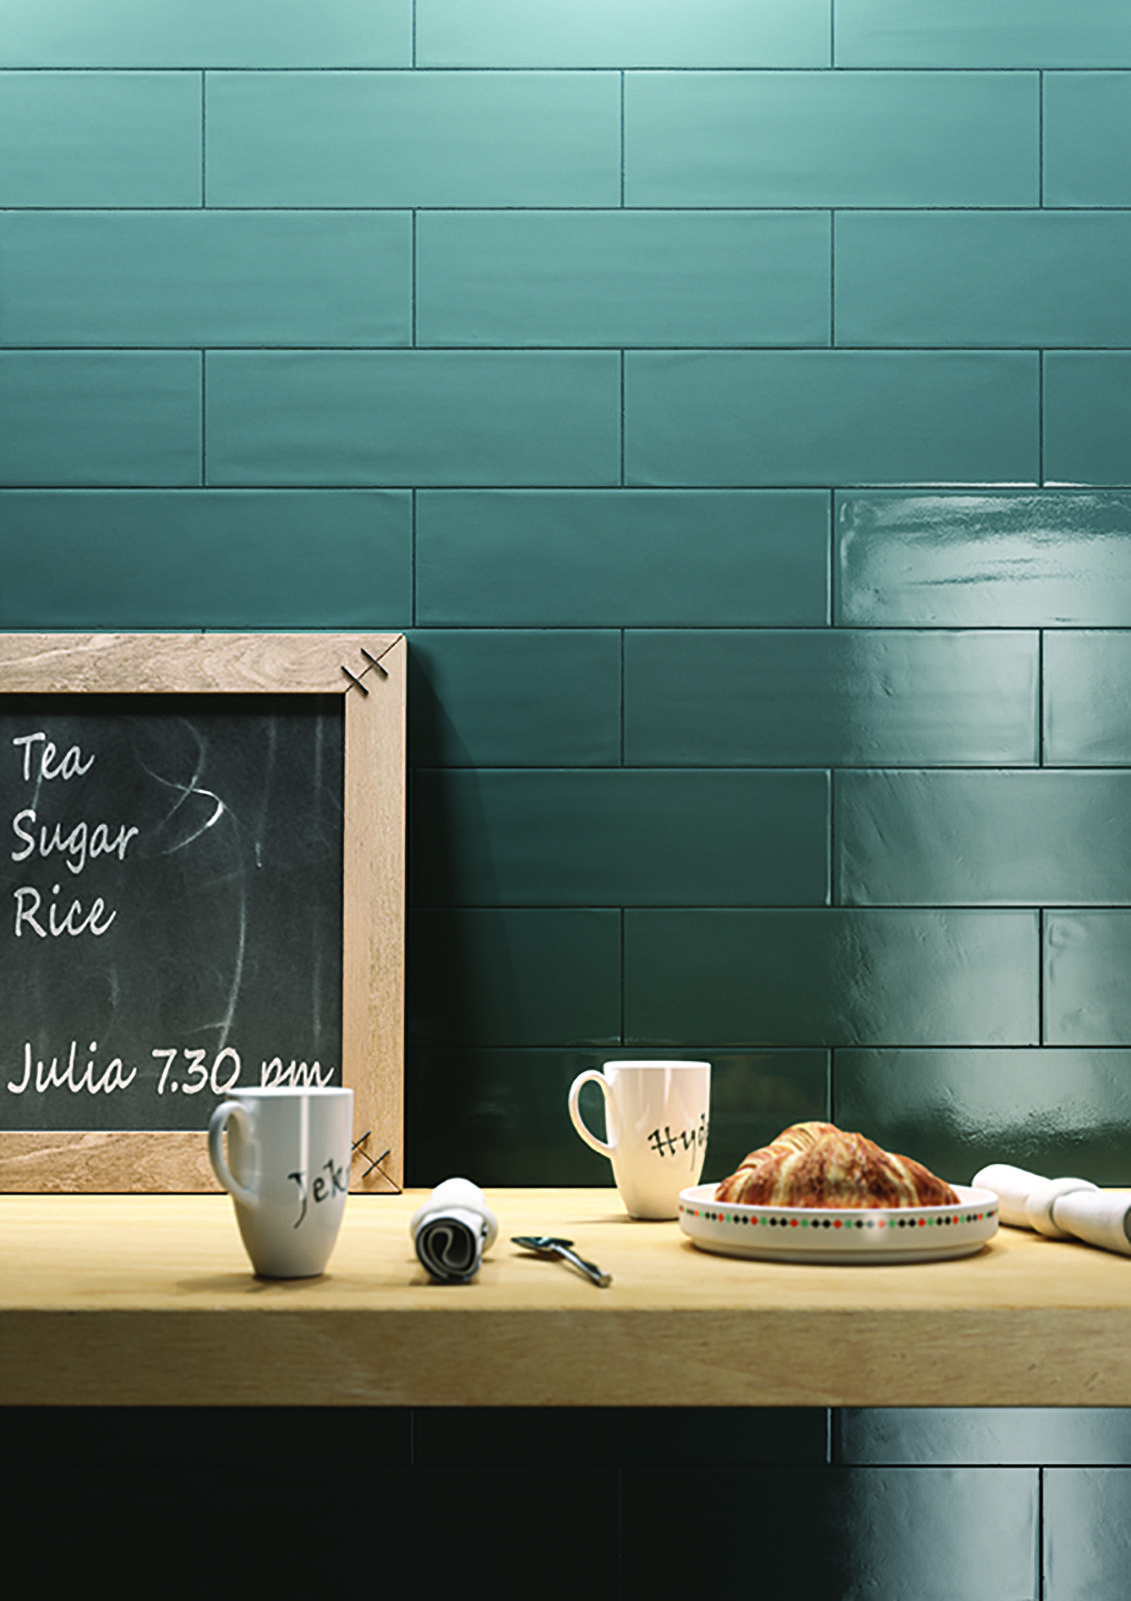 Cool Brick Glossy Ceramic Wall Coverings For Kitchens And Bathroom Largest Home Design Picture Inspirations Pitcheantrous